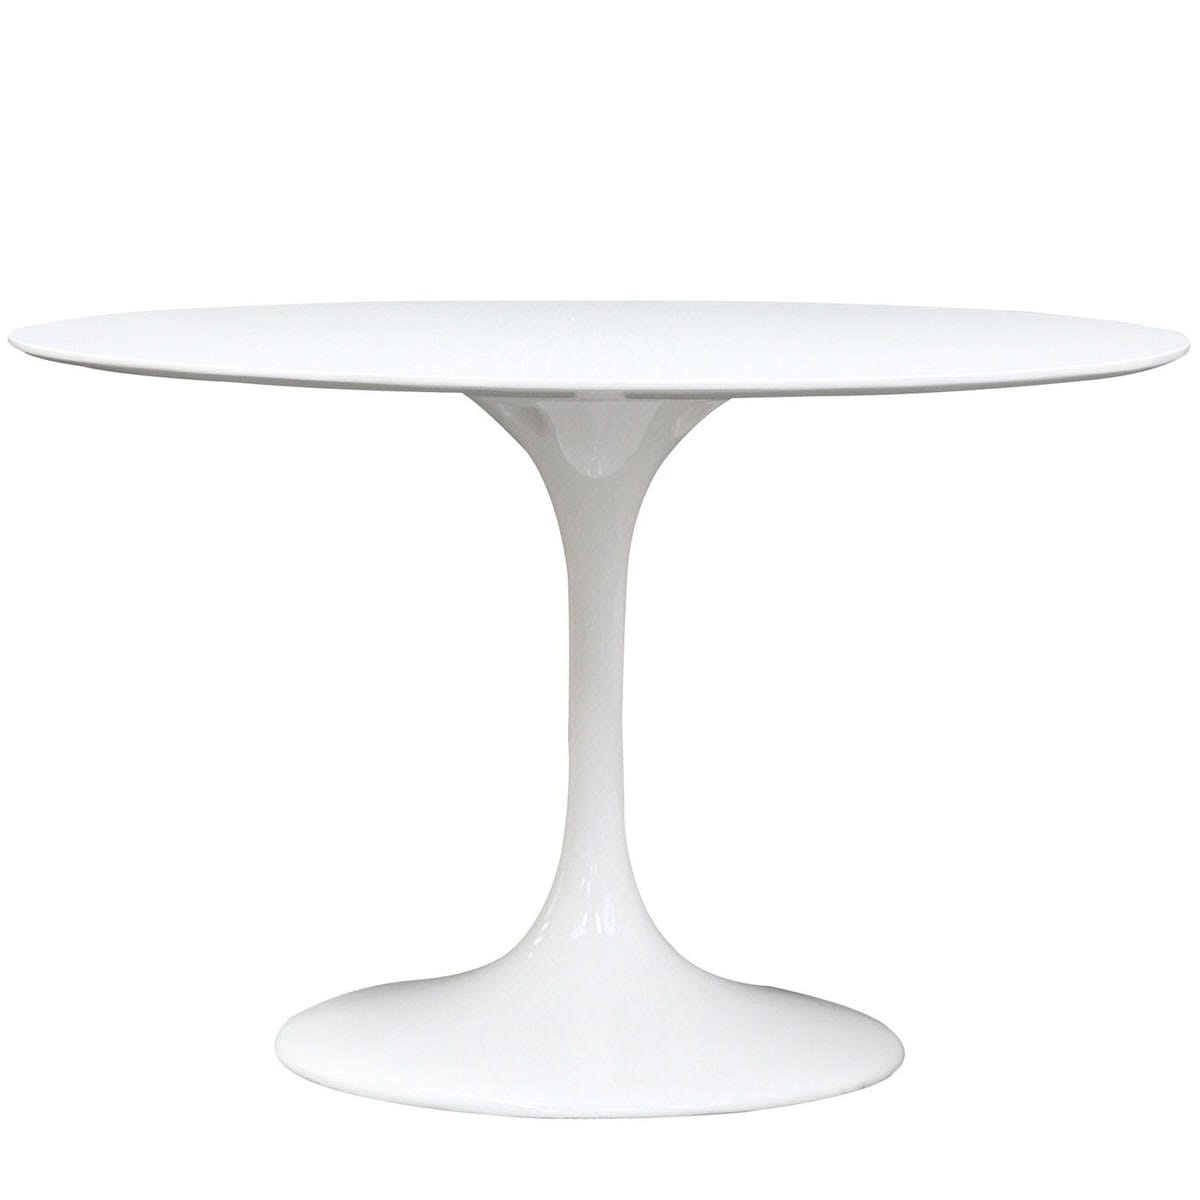 Lippa 48 Inch Round Fiberglass Dining Table White By Modern Living